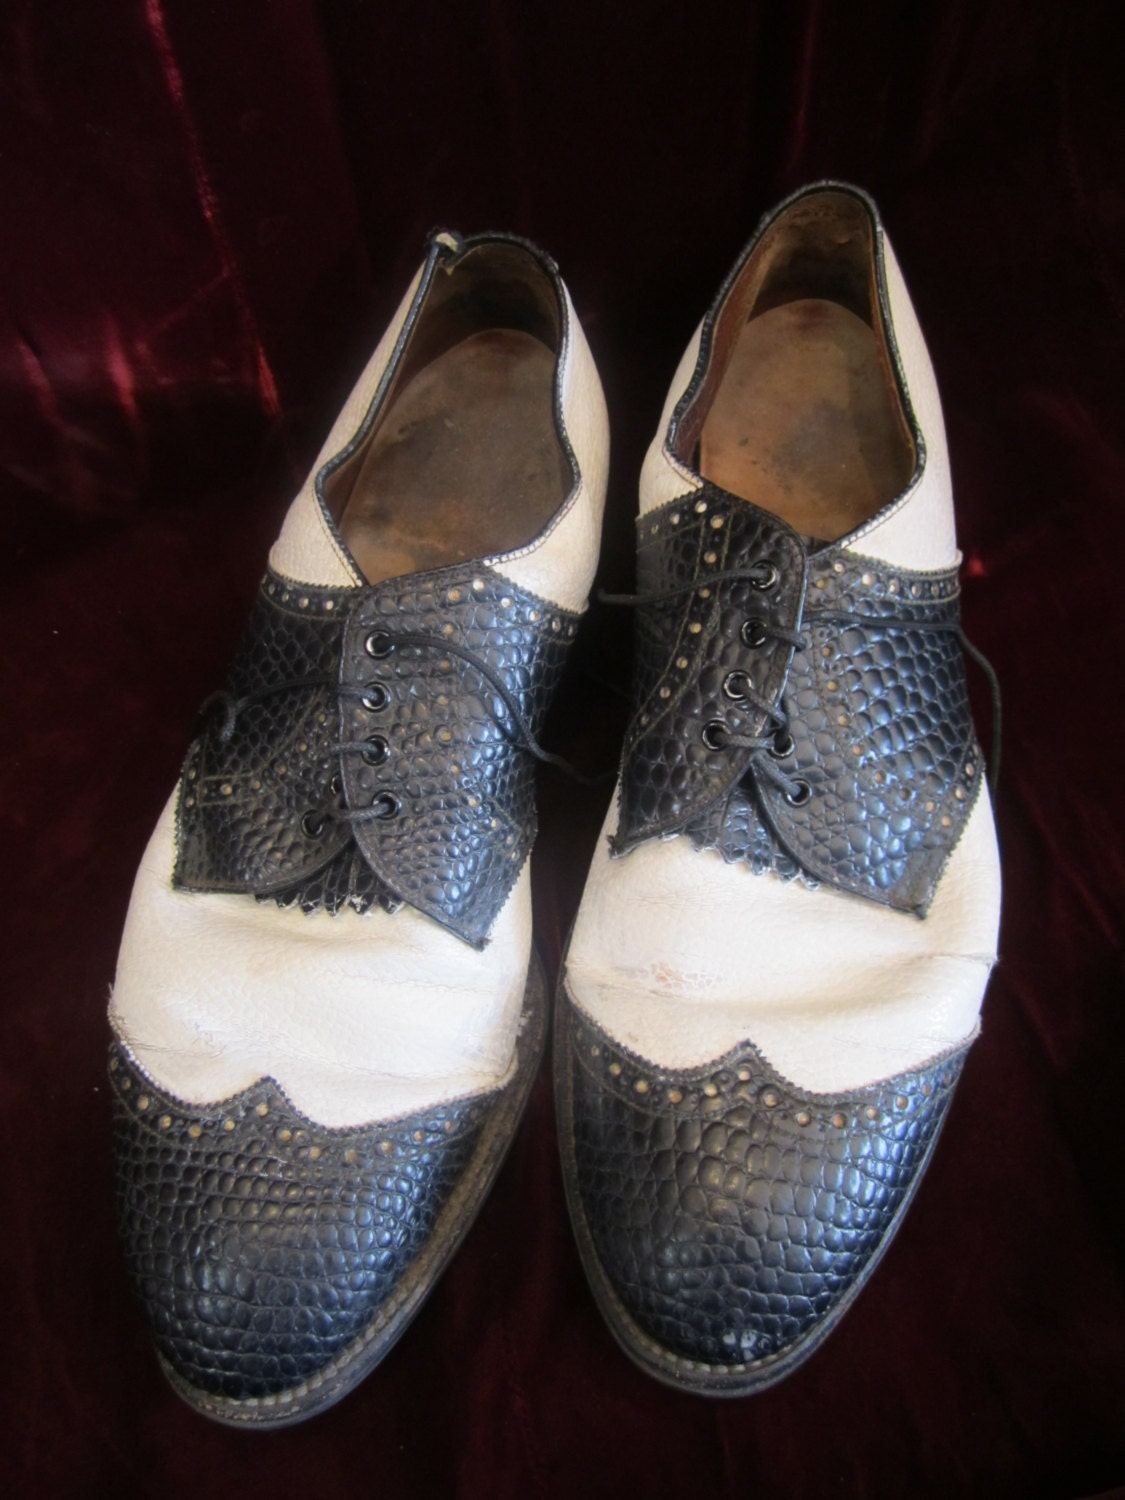 New 1930s Mens Fashion Ties Pair Of Black  White Leather Spectator Mens Shoes, Ca Late 1920S - 1930S $25.00 AT vintagedancer.com